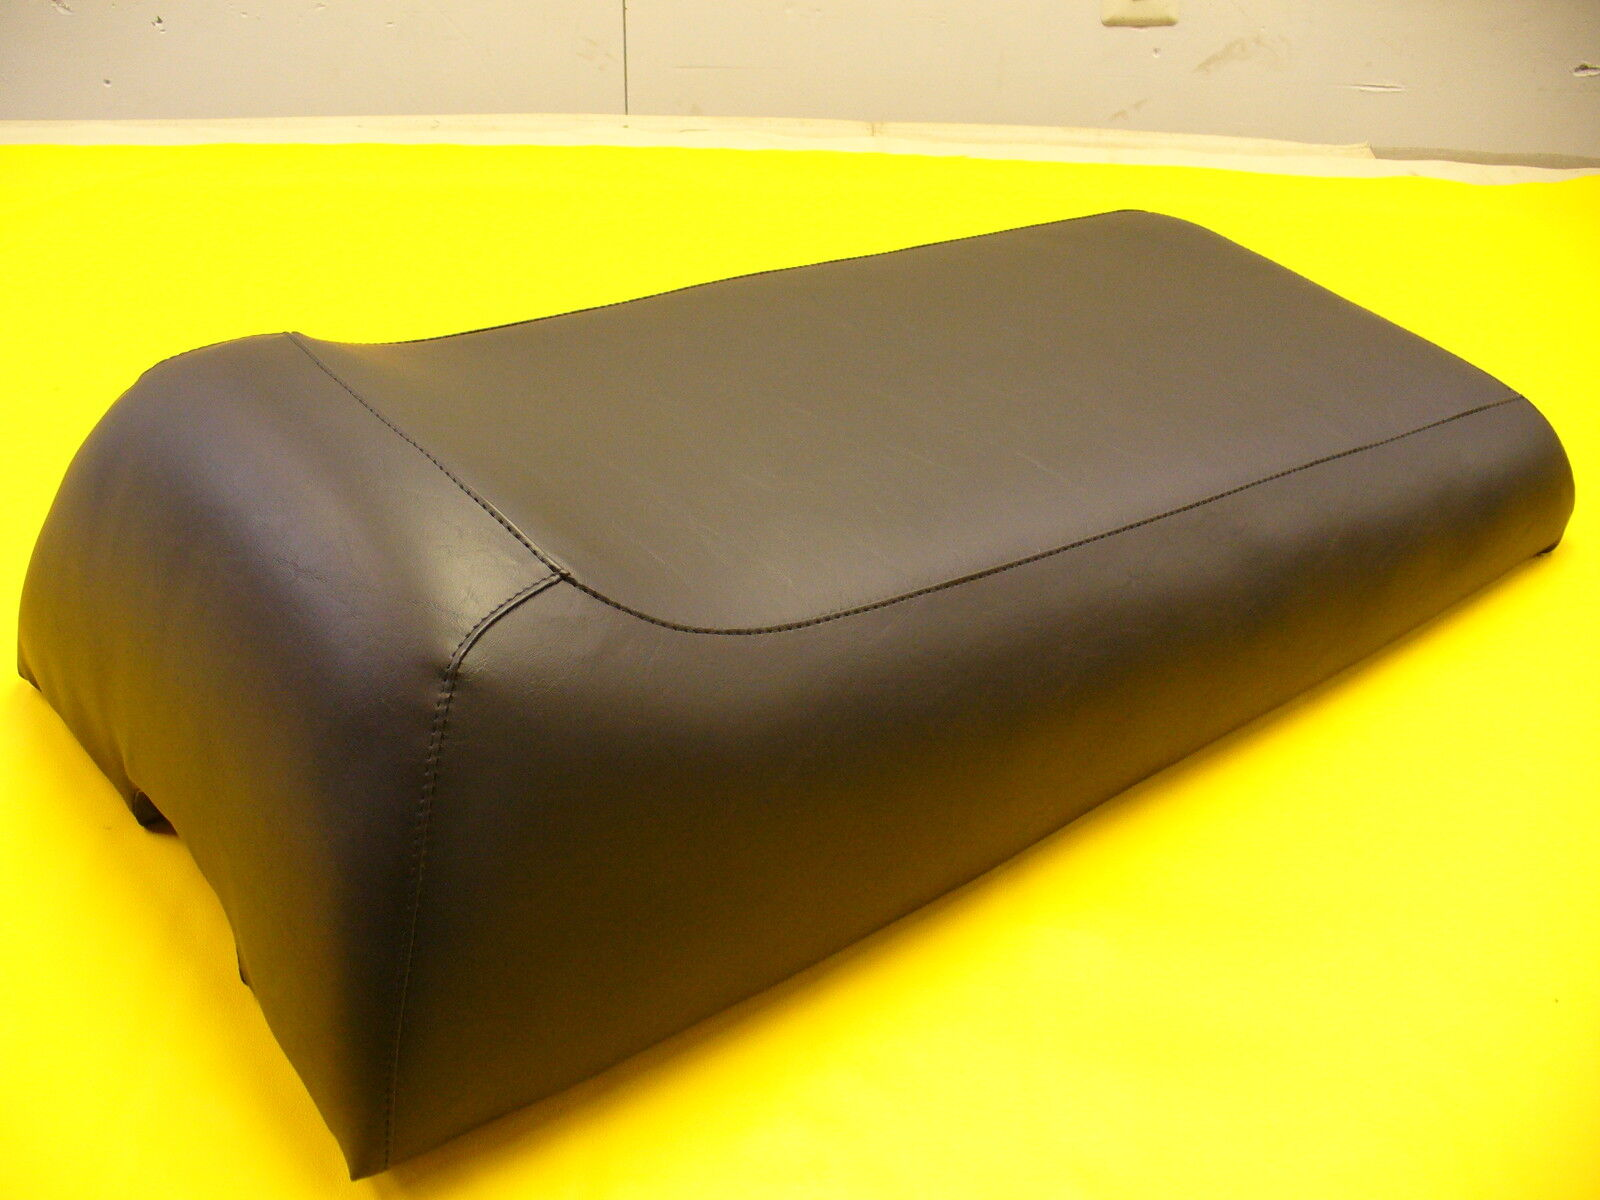 76-78  JOHN DEERE  LIQUIFIRE SNOWMOBILE SEAT COVER  NEW